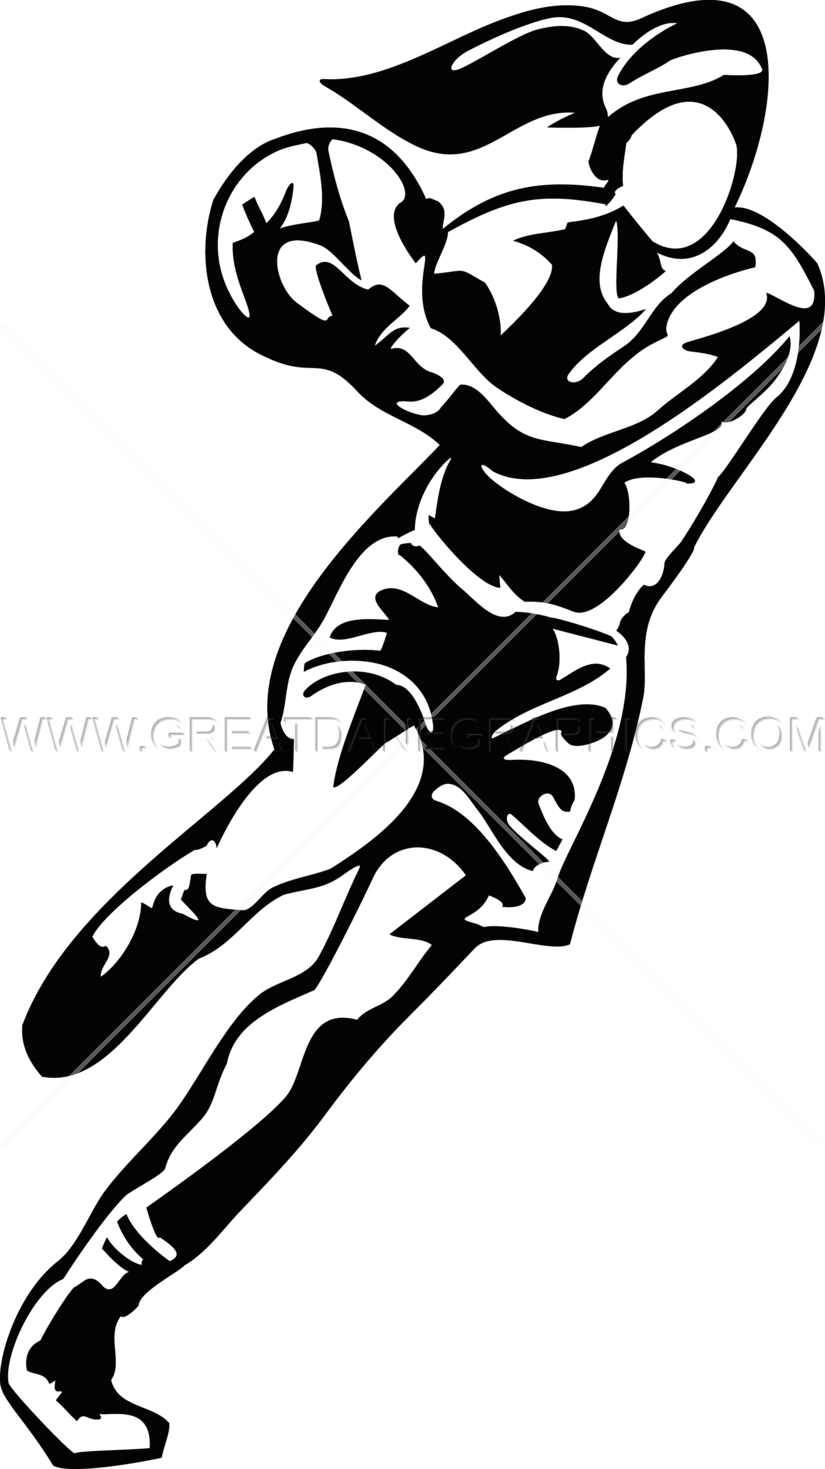 Girl dunking basketball clipart image freeuse download Female Basketball Player | Production Ready Artwork for T-Shirt Printing image freeuse download